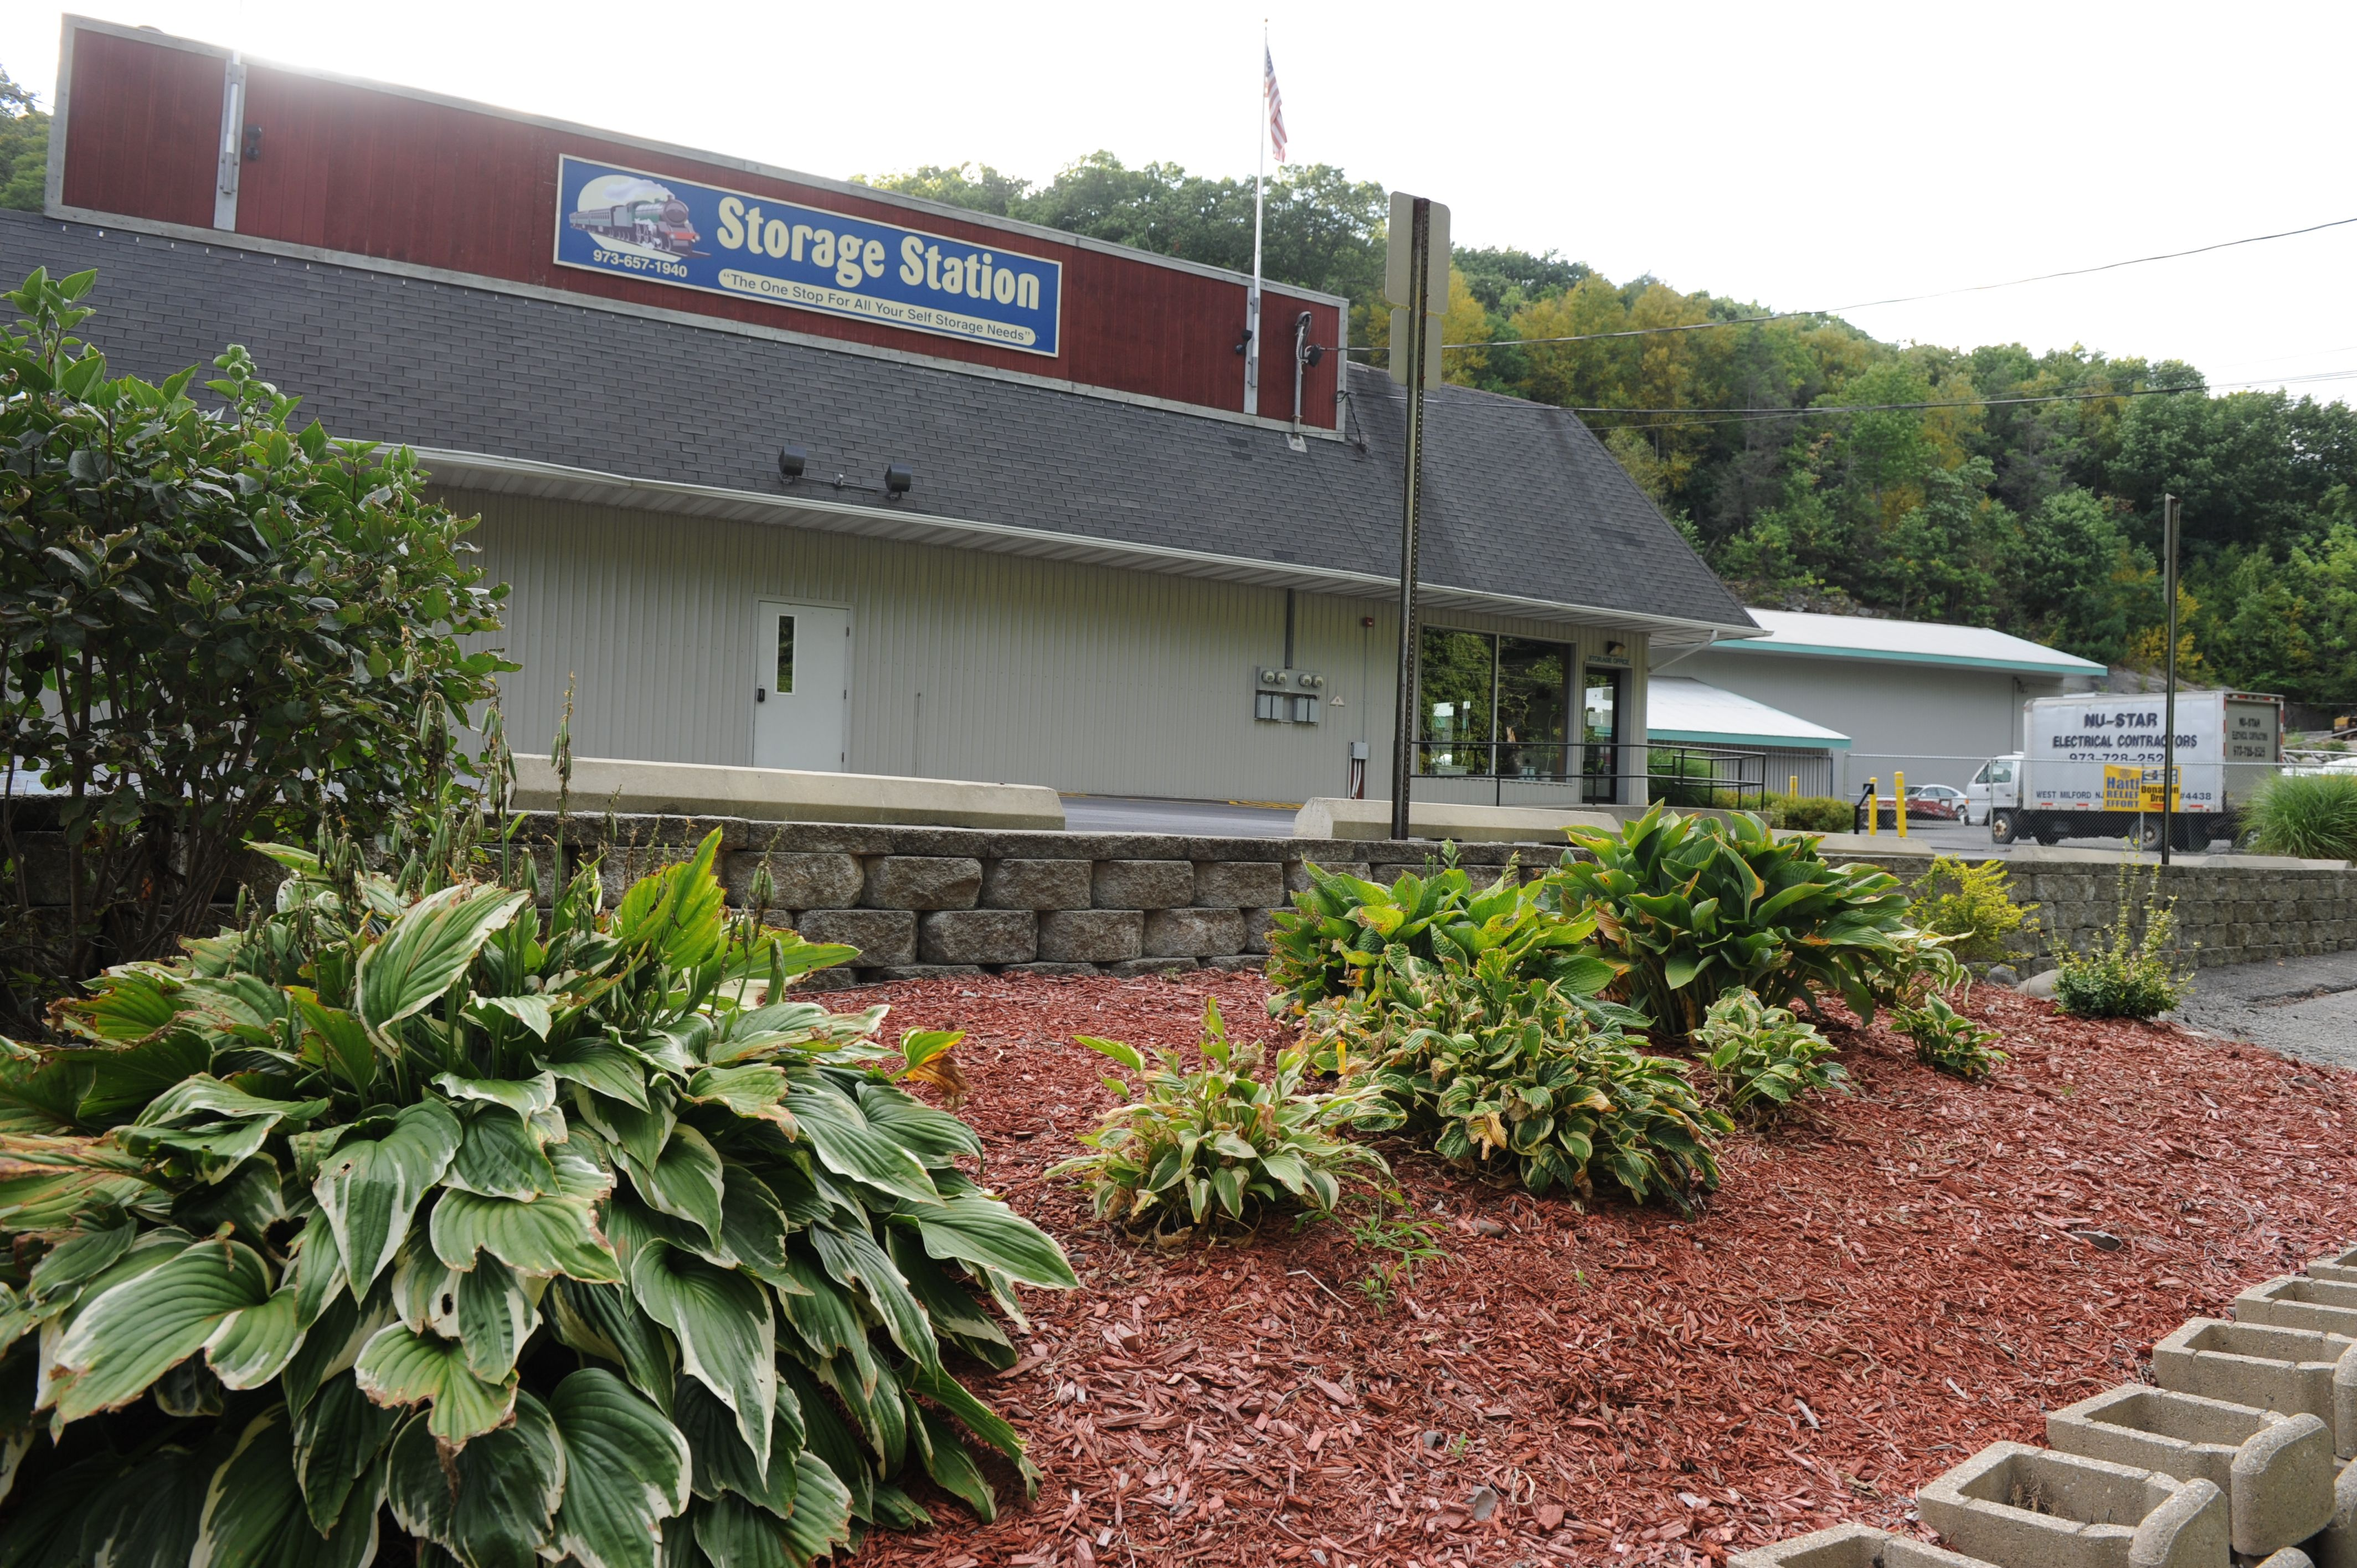 11 White Road West Milford Nj 07421 Call Now 973 846 4402 Http Www Storagestations Com New Jersey Hewitt West Milford Beautiful Landscapes Self Storage